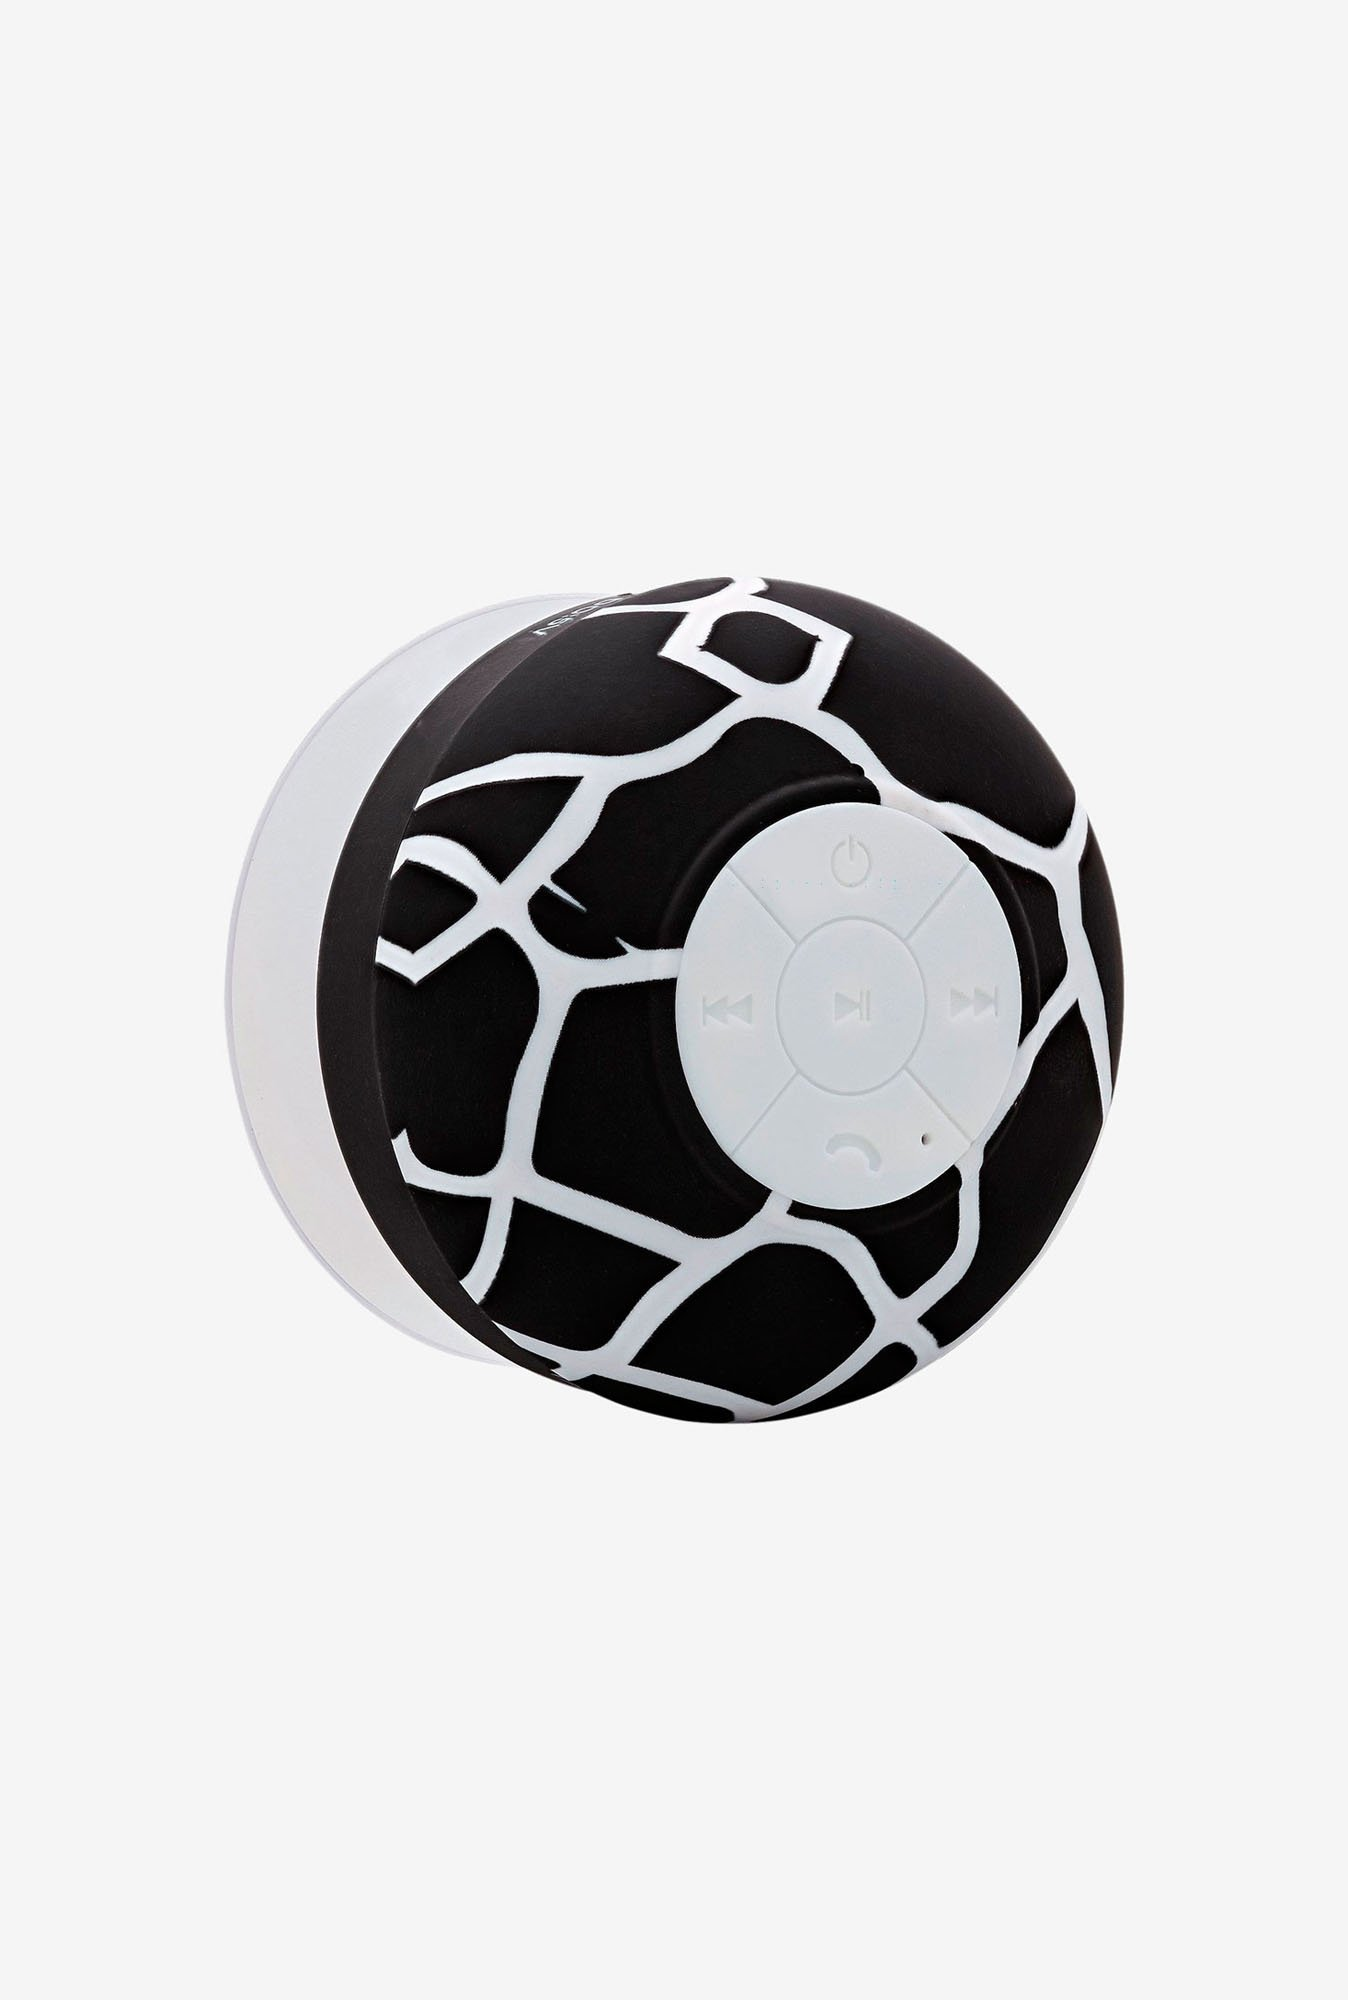 Aduro AS-WSP20-GR01 Bluetooth Speaker (Black Giraffe)